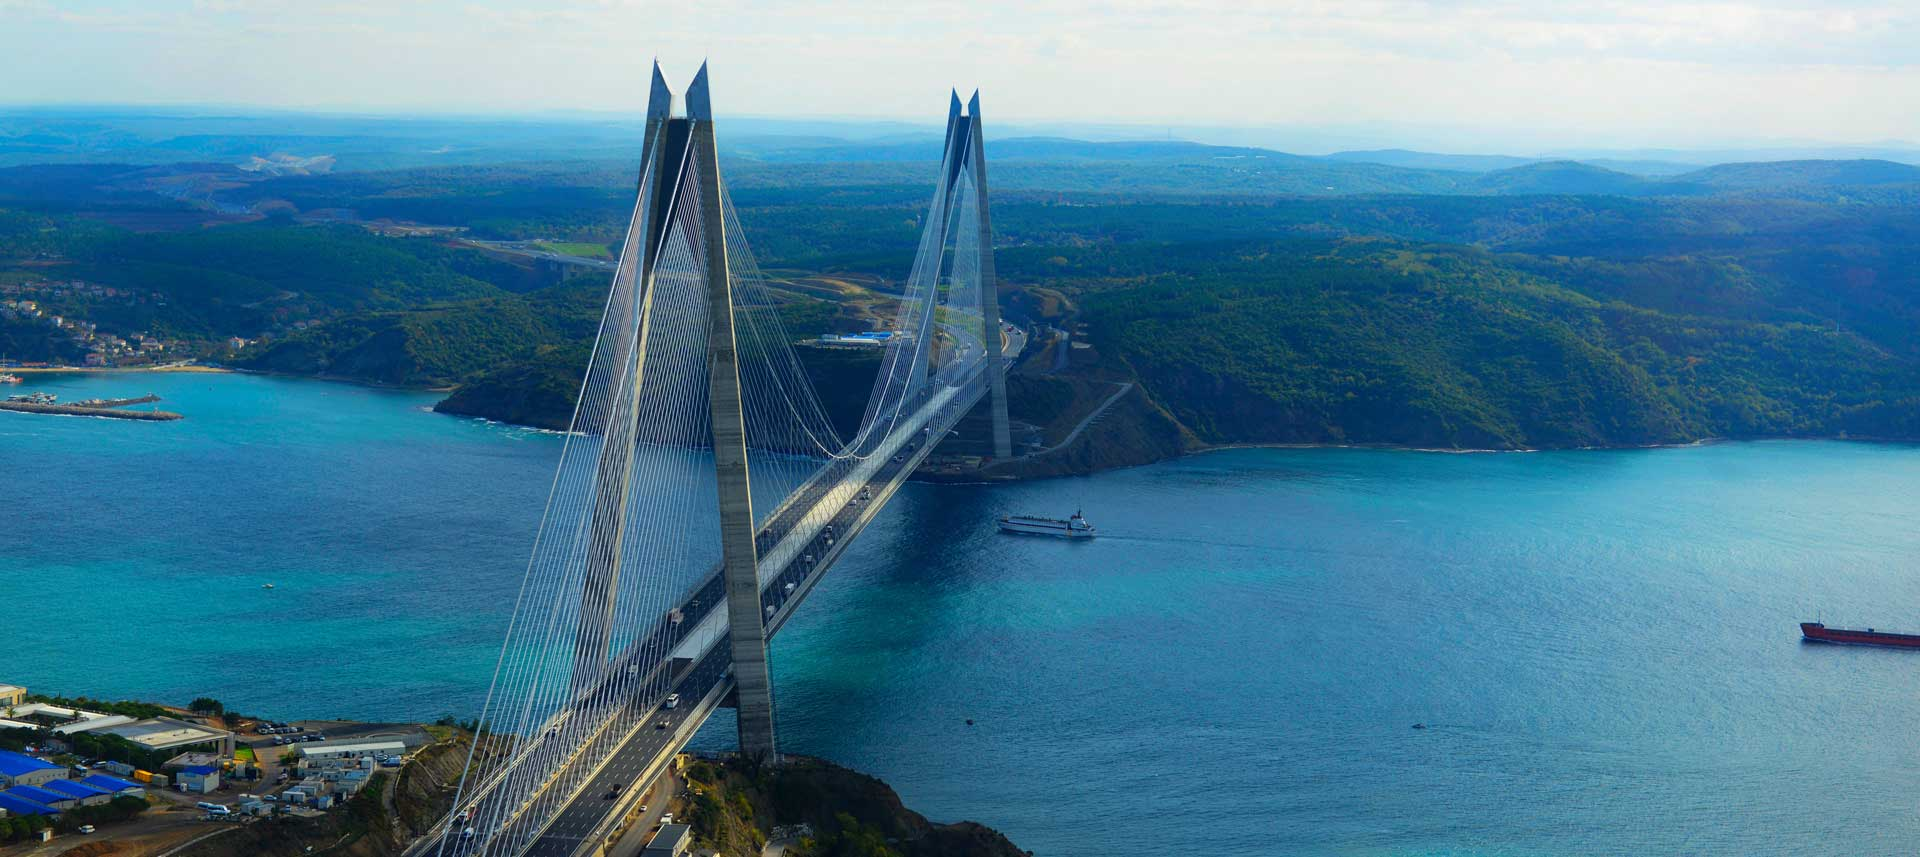 3RD BRIDGE 3RD BRIDGE AND NORTH MARMARA HIGHWAY